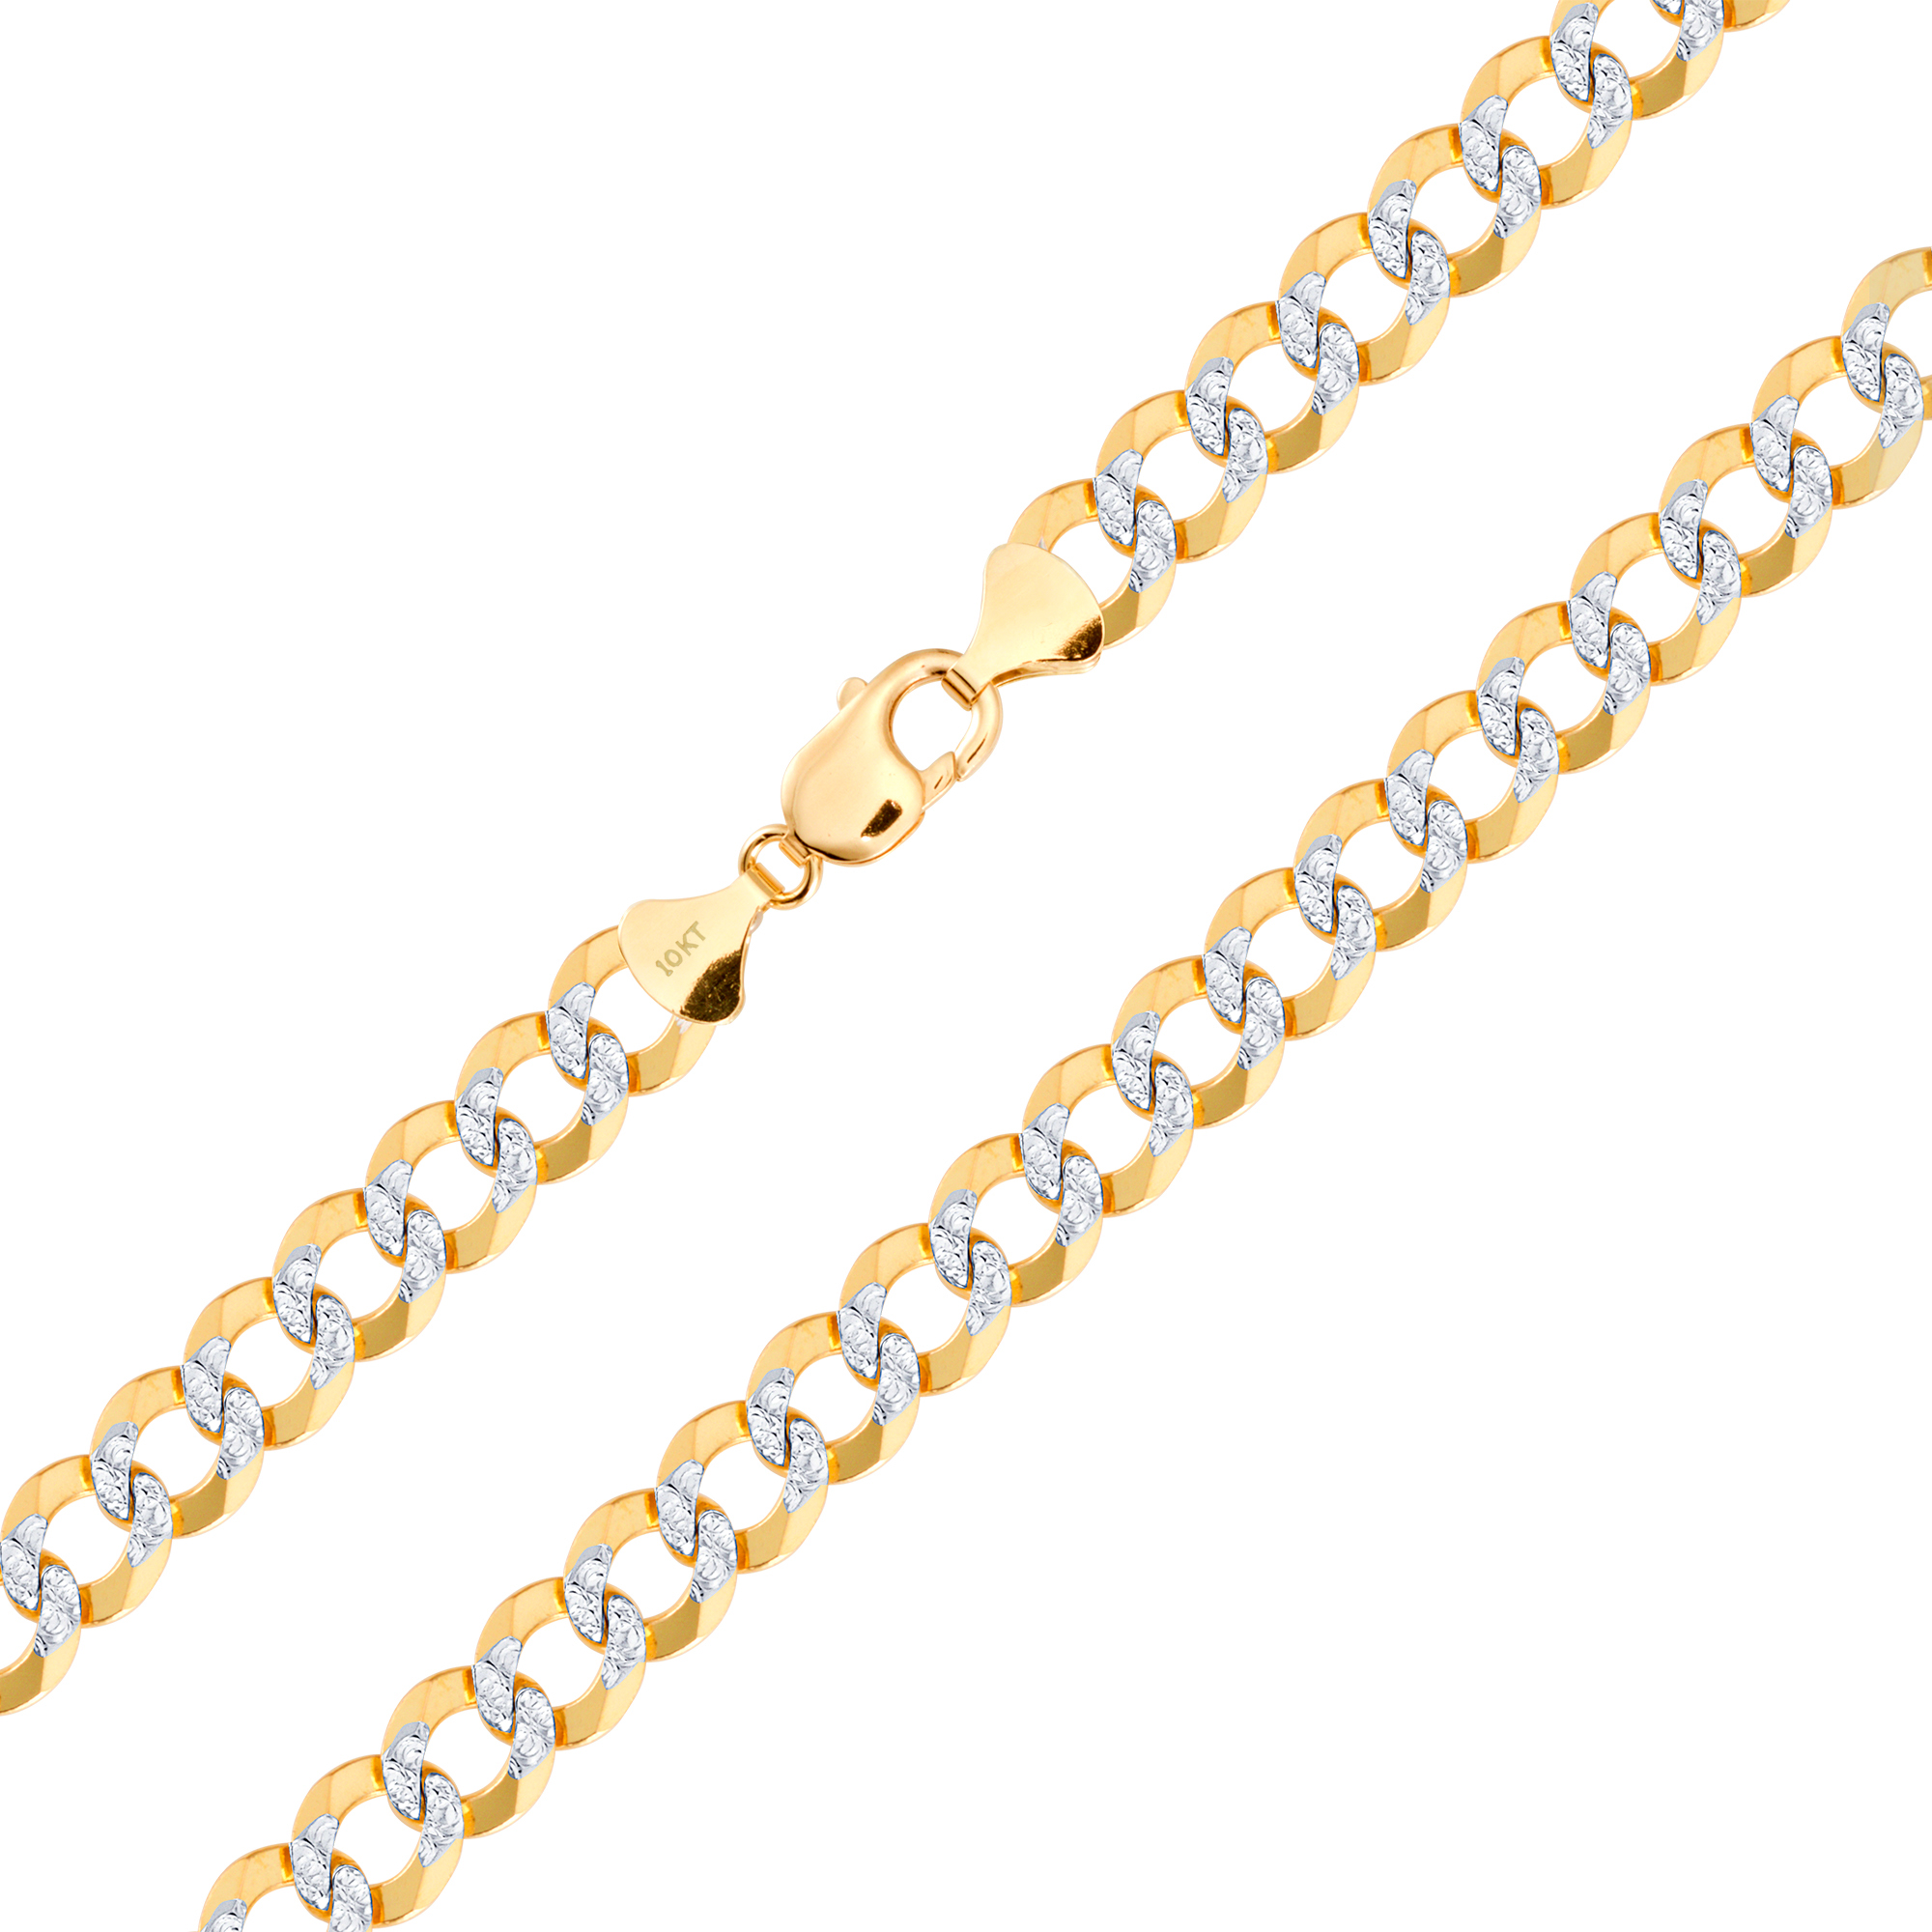 10k-Yellow-Gold-Solid-11-5mm-Diamond-Cut-Pave-Cuban-Curb-Chain-Necklace-22-034-30-034 thumbnail 15